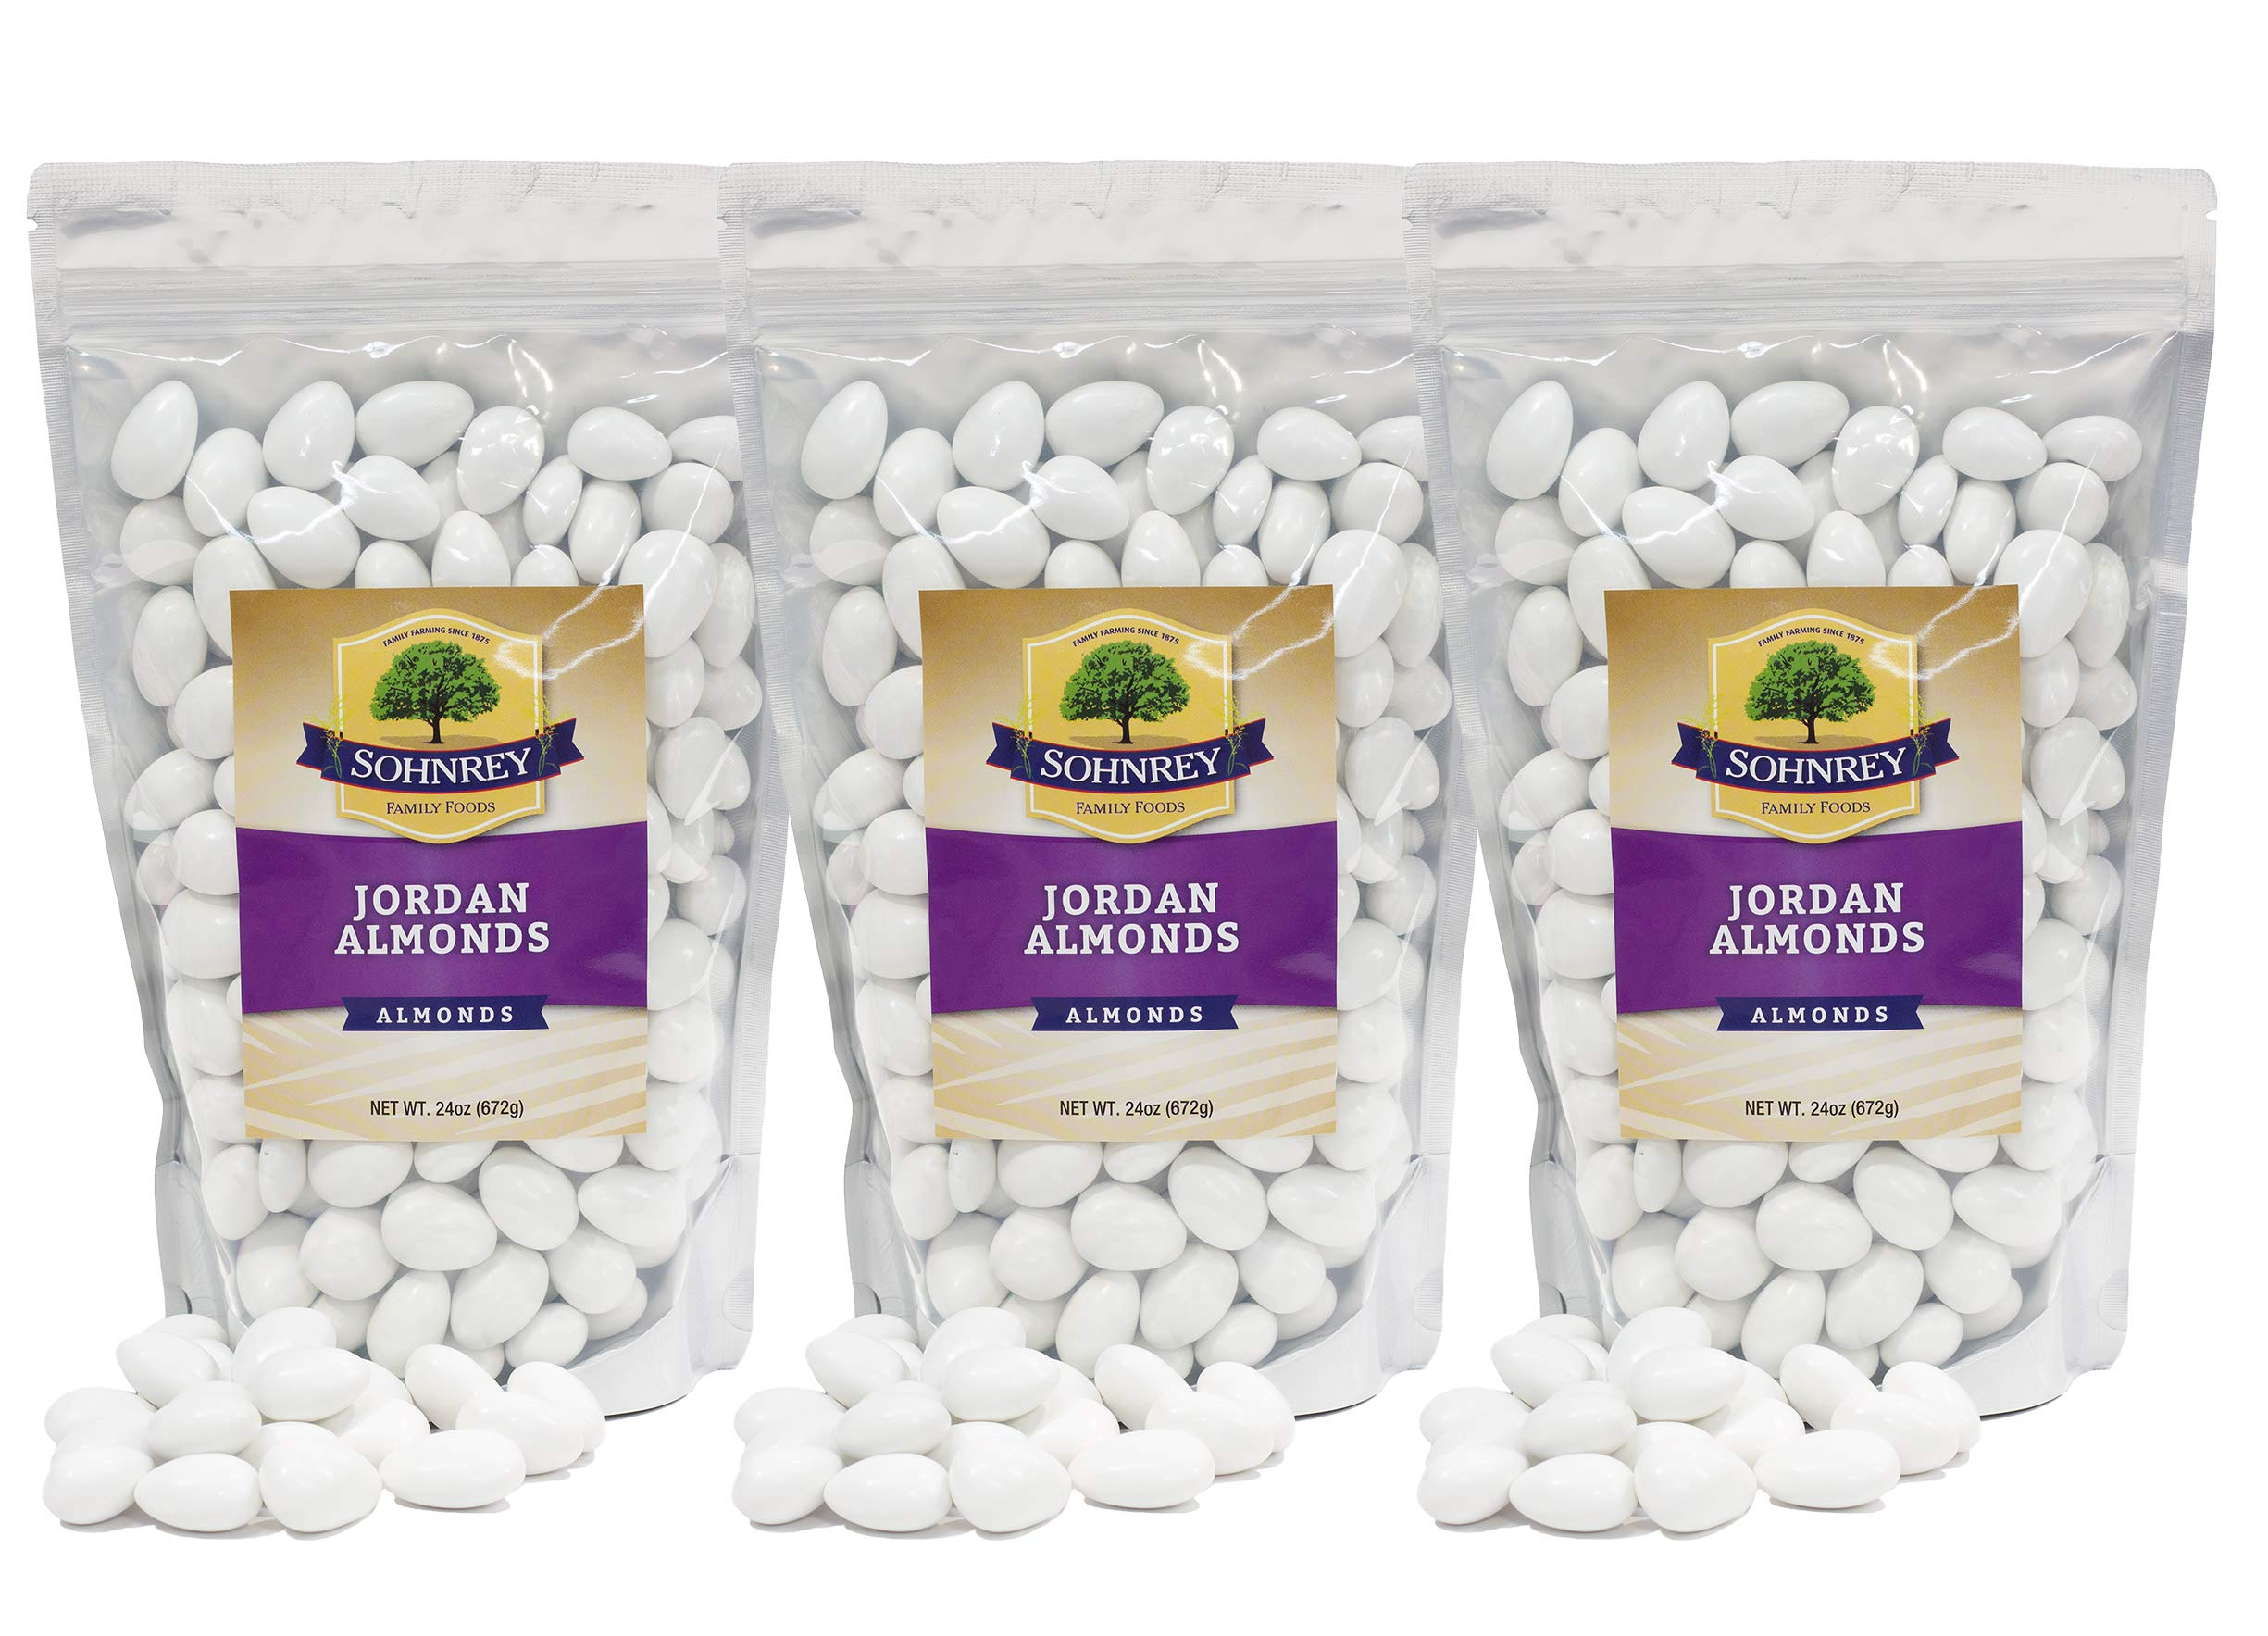 Jordan Almonds Wedding Shower Party Favor Premium White Candied Nuts (3-Pack (4.5 lbs)) by Sohnrey Family Foods